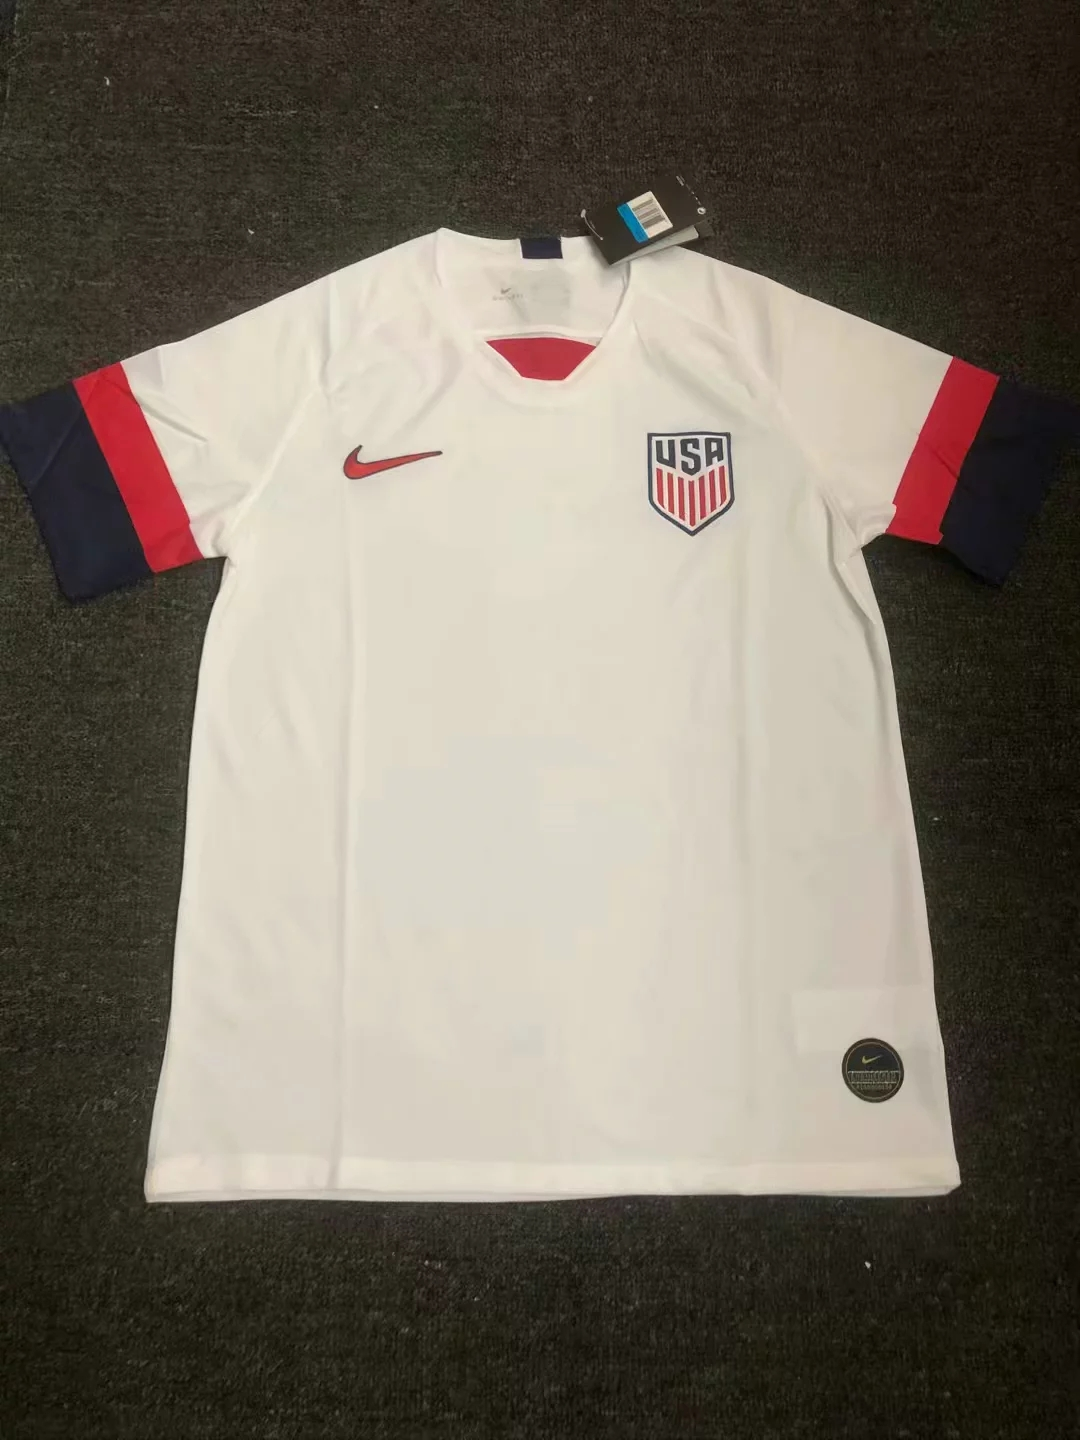 Gold Cup 2020.New Usa Home Soccer Jersey Cccf Gold Cup 2019 2020 Men Adults From Linsaistore